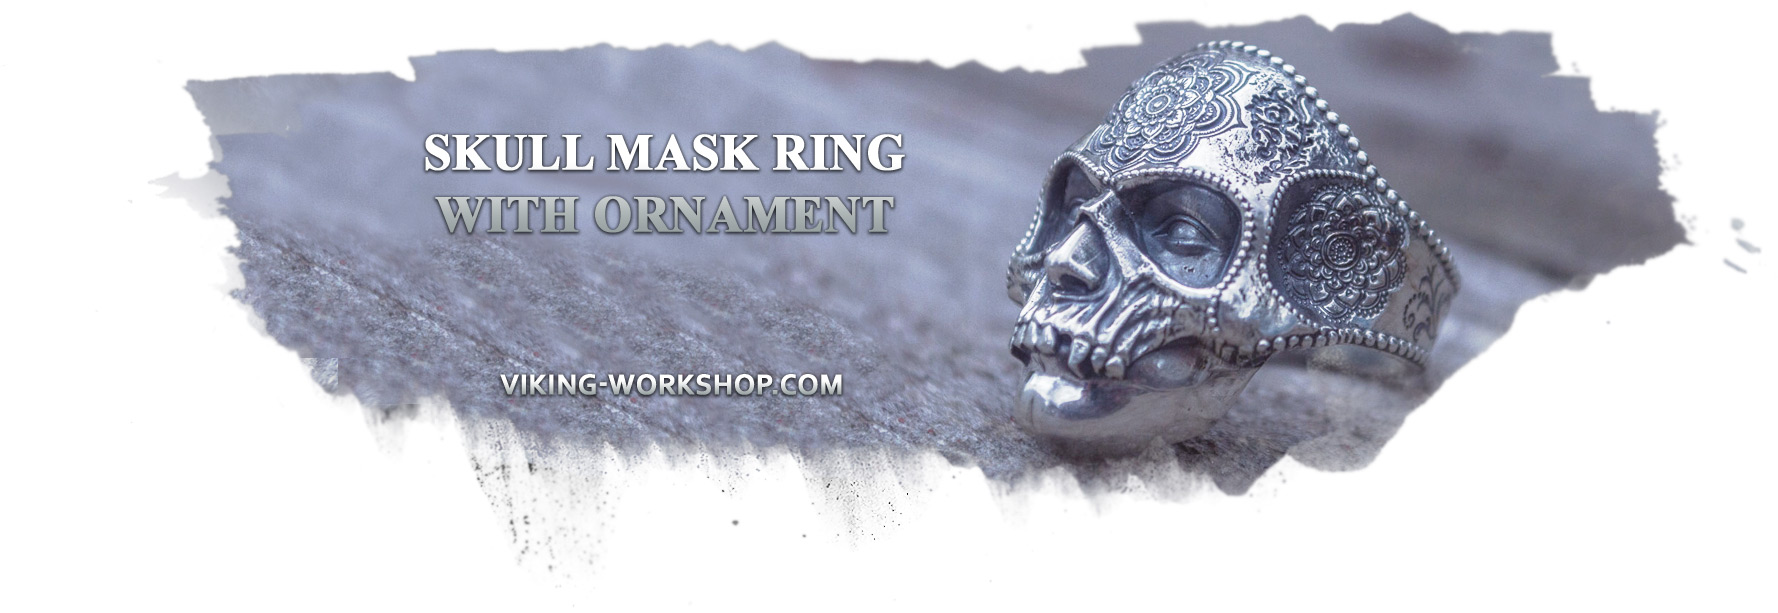 Skull Mask Ring with Ornament